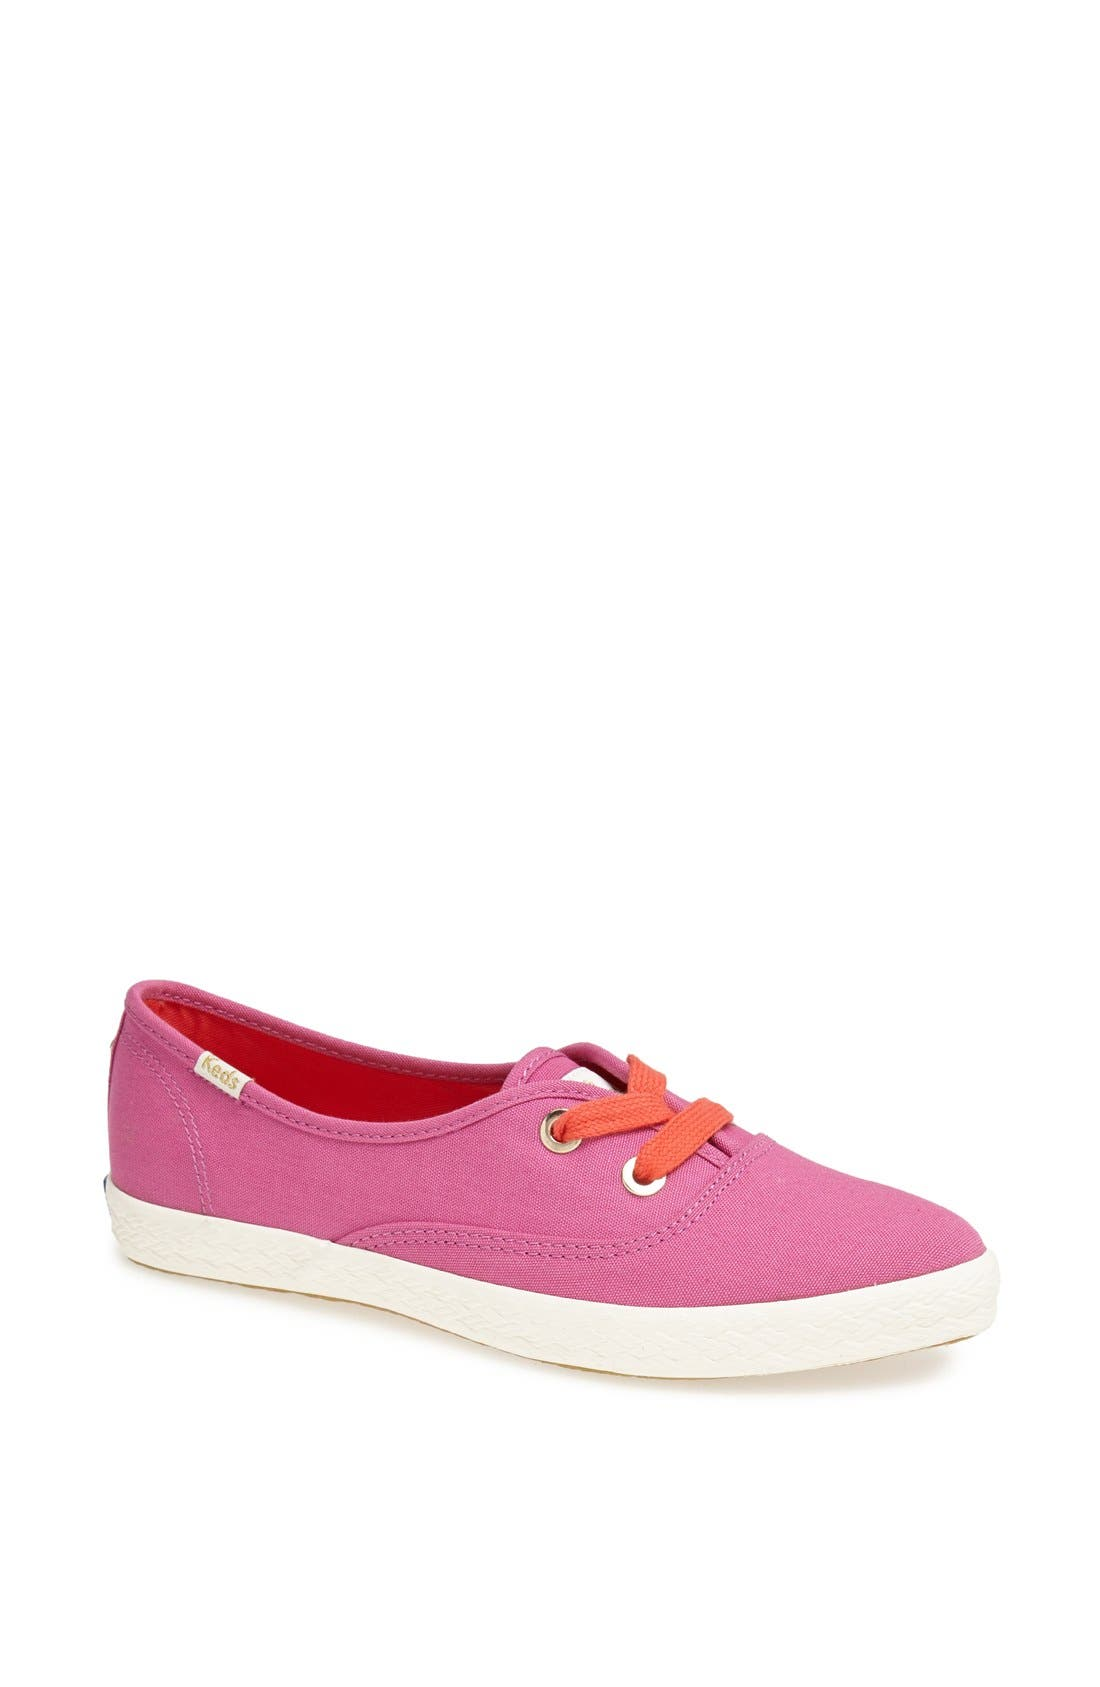 KEDS<SUP>®</SUP> FOR KATE SPADE NEW YORK,                             'pointer' sneaker,                             Main thumbnail 1, color,                             669